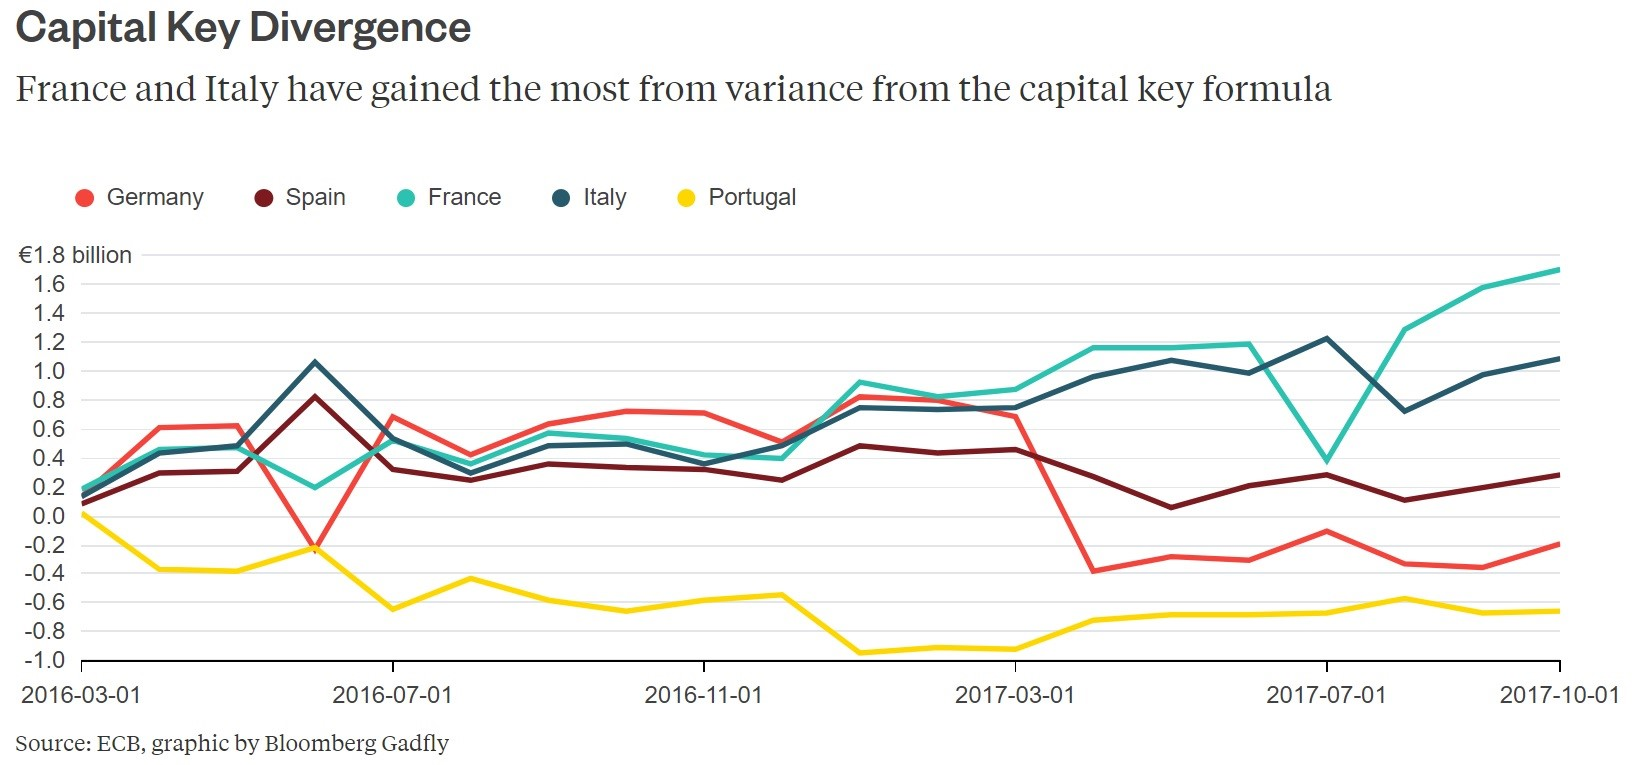 More Buying Of Italian Bonds Than Capital Key Suggests